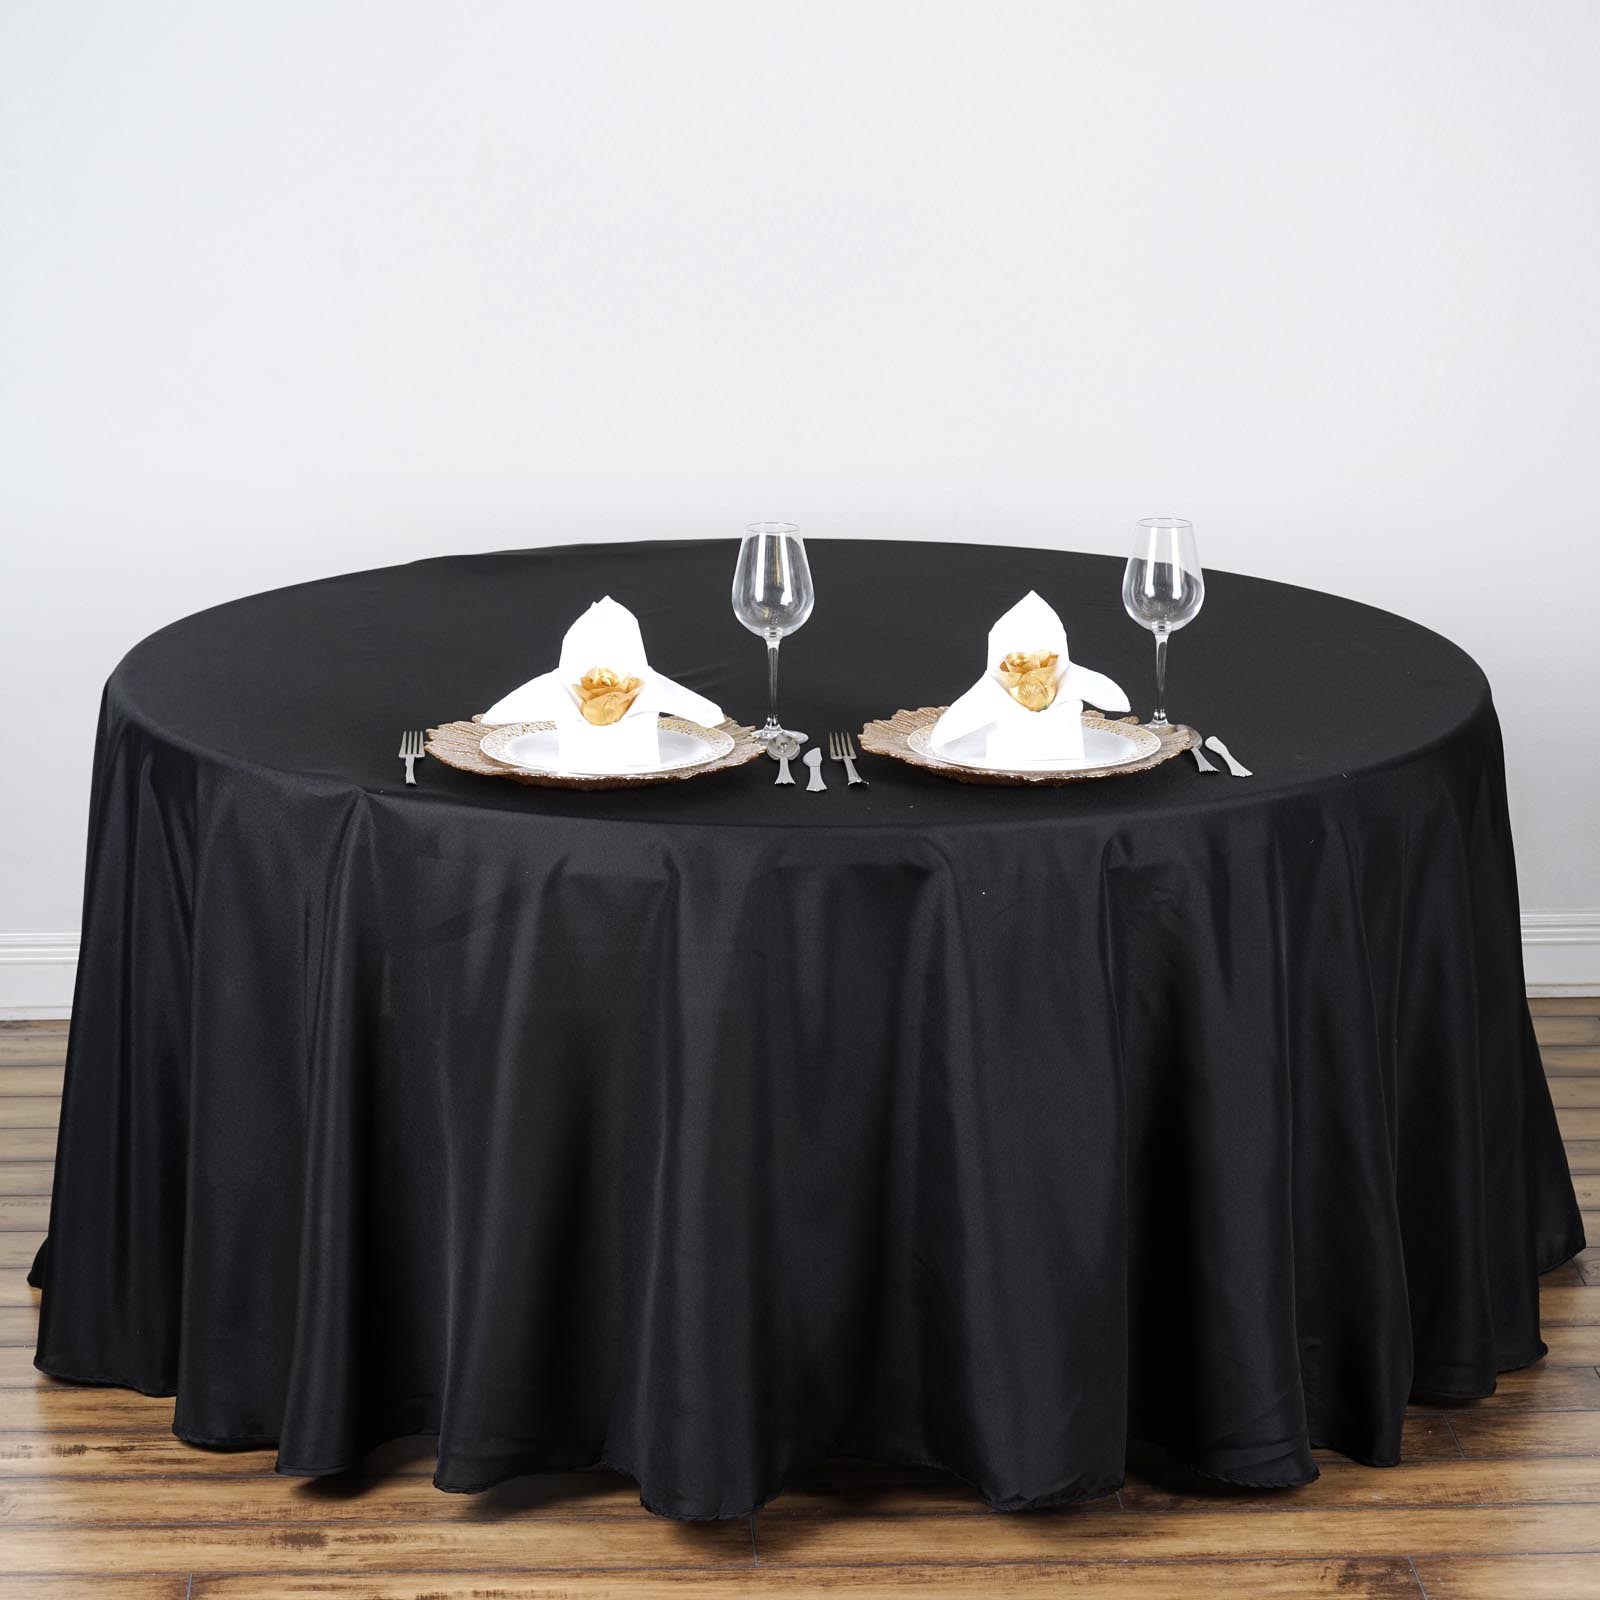 10 pc 108 round polyester tablecloth tabletop wedding for 108 round table cloth